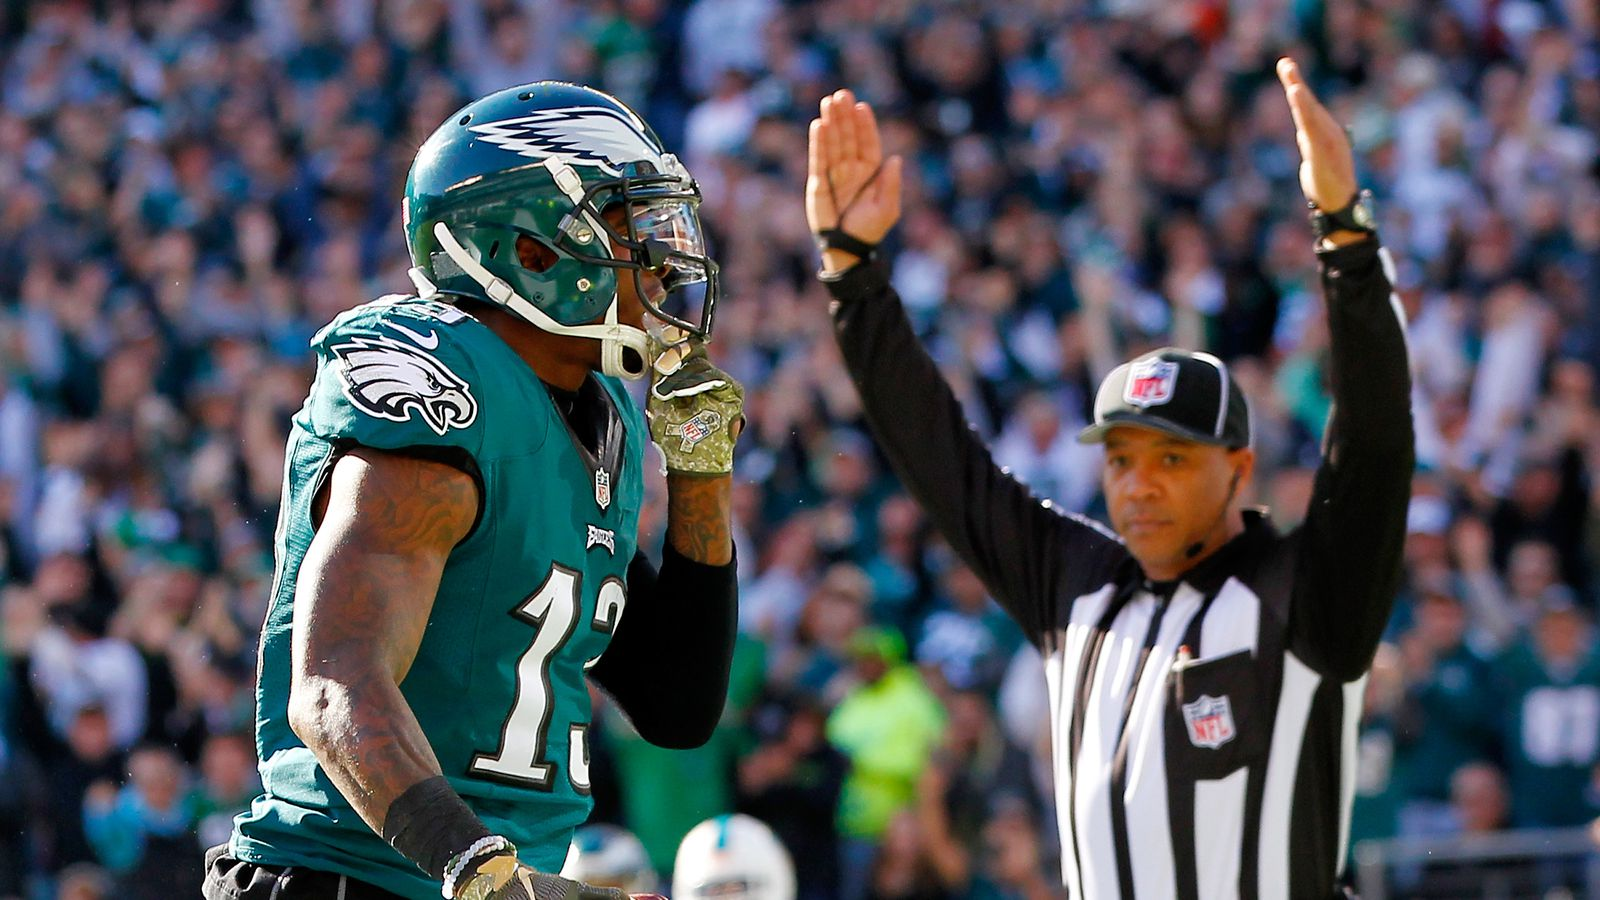 Jerseys NFL Online - The Eagles can get a glimpse of their future against the Bucs ...